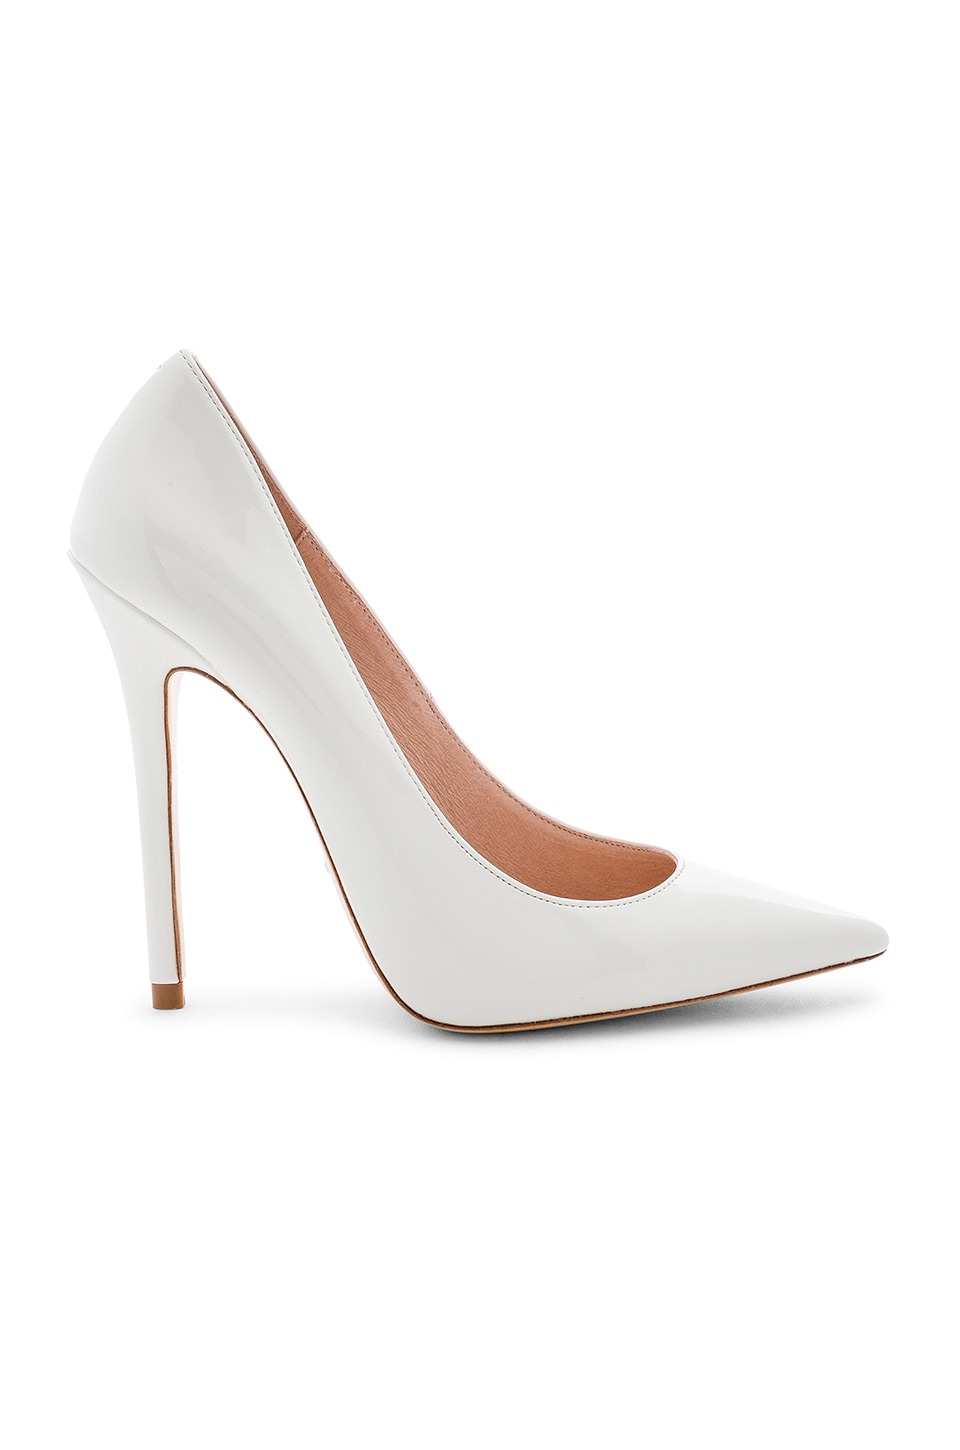 RAYE Madonna Heel in White